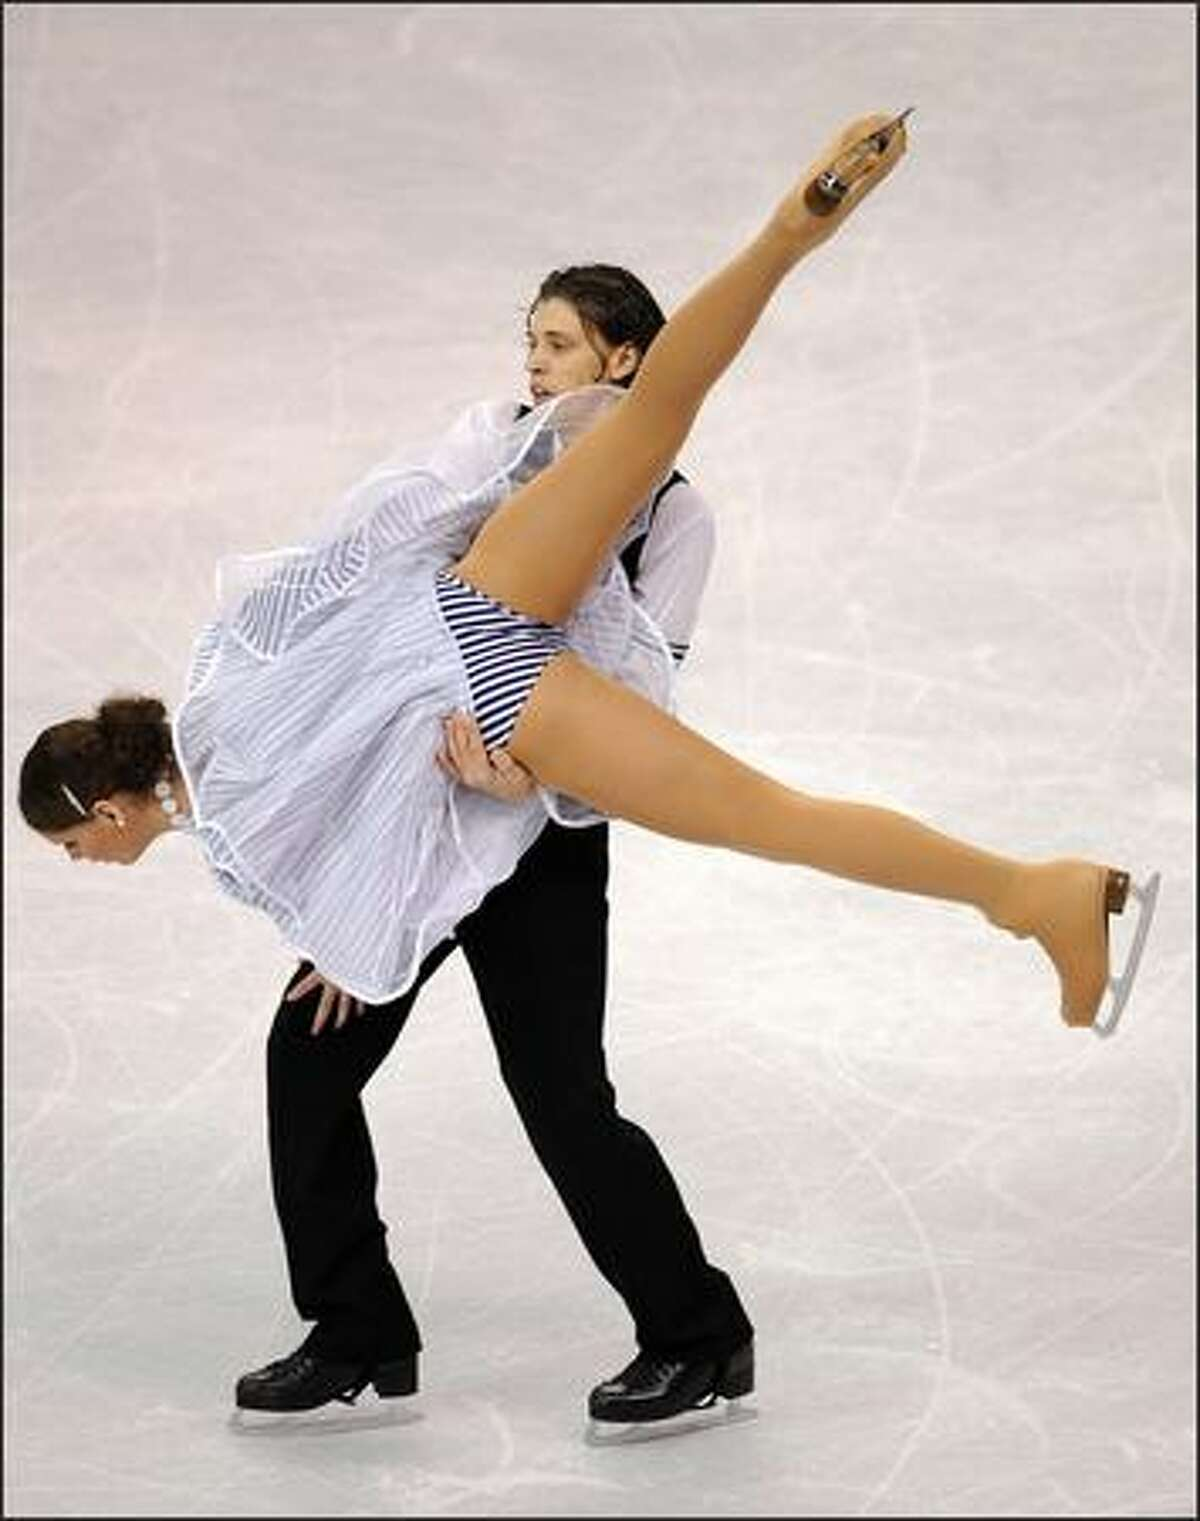 Emese Laszlo and Mate Fejes from Hungary compete during the original dance event.